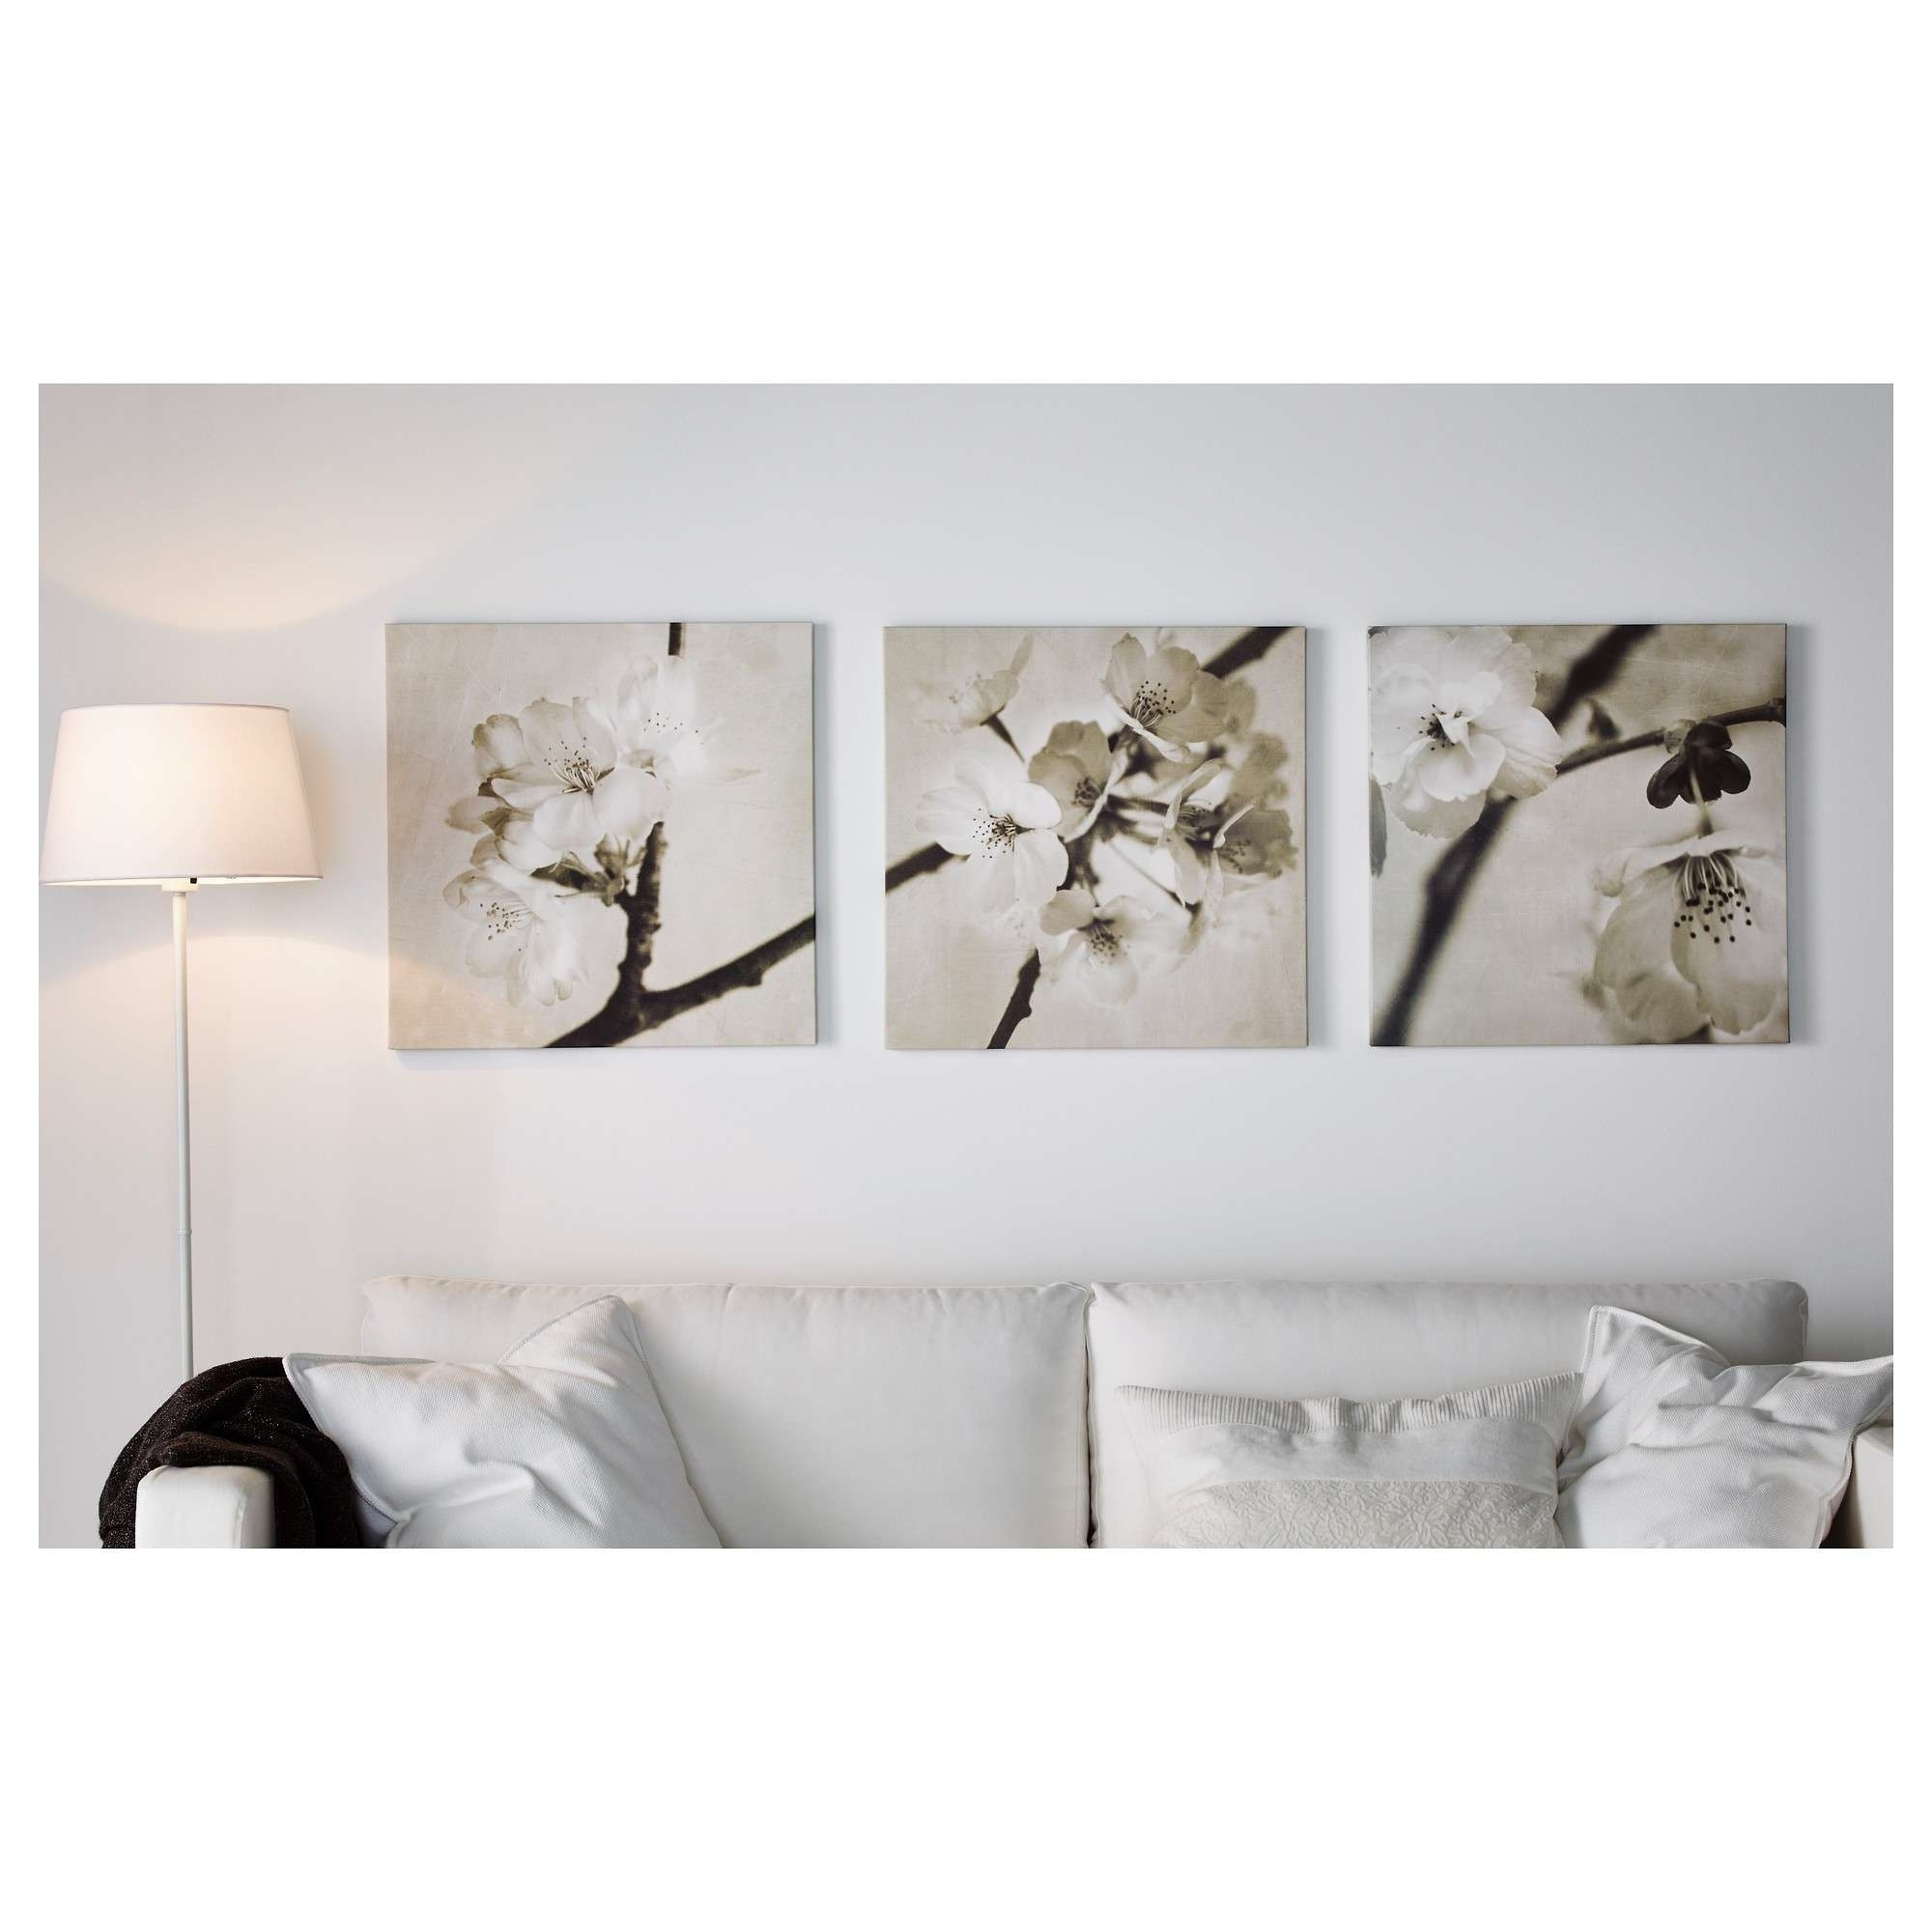 Best Of Wall Canvas Art Ikea | Wall Decorations Within Latest Ikea Wall Art (View 3 of 15)